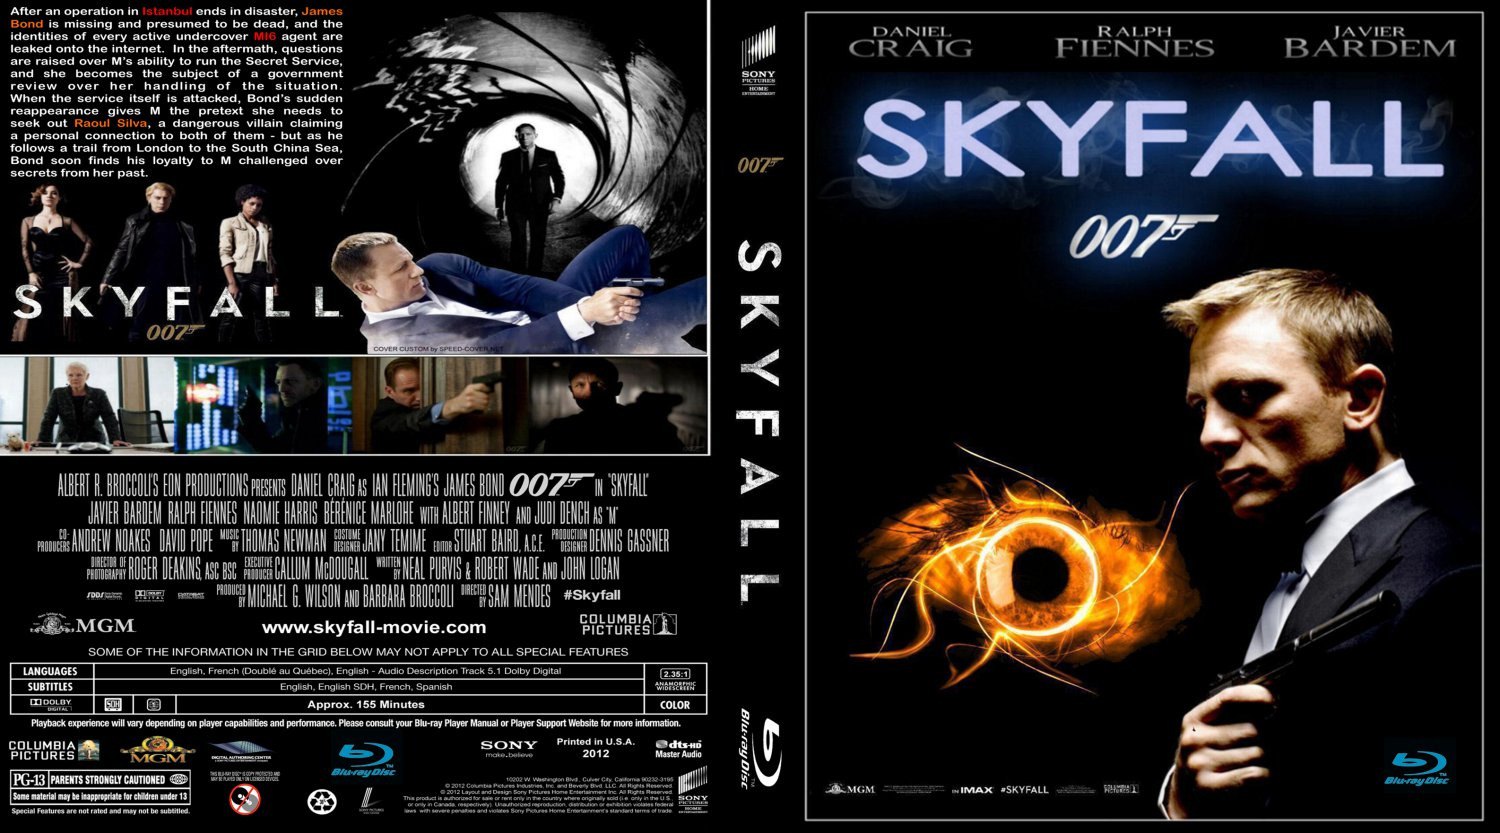 skyfall movie blu ray custom covers skyfall iii blu. Black Bedroom Furniture Sets. Home Design Ideas